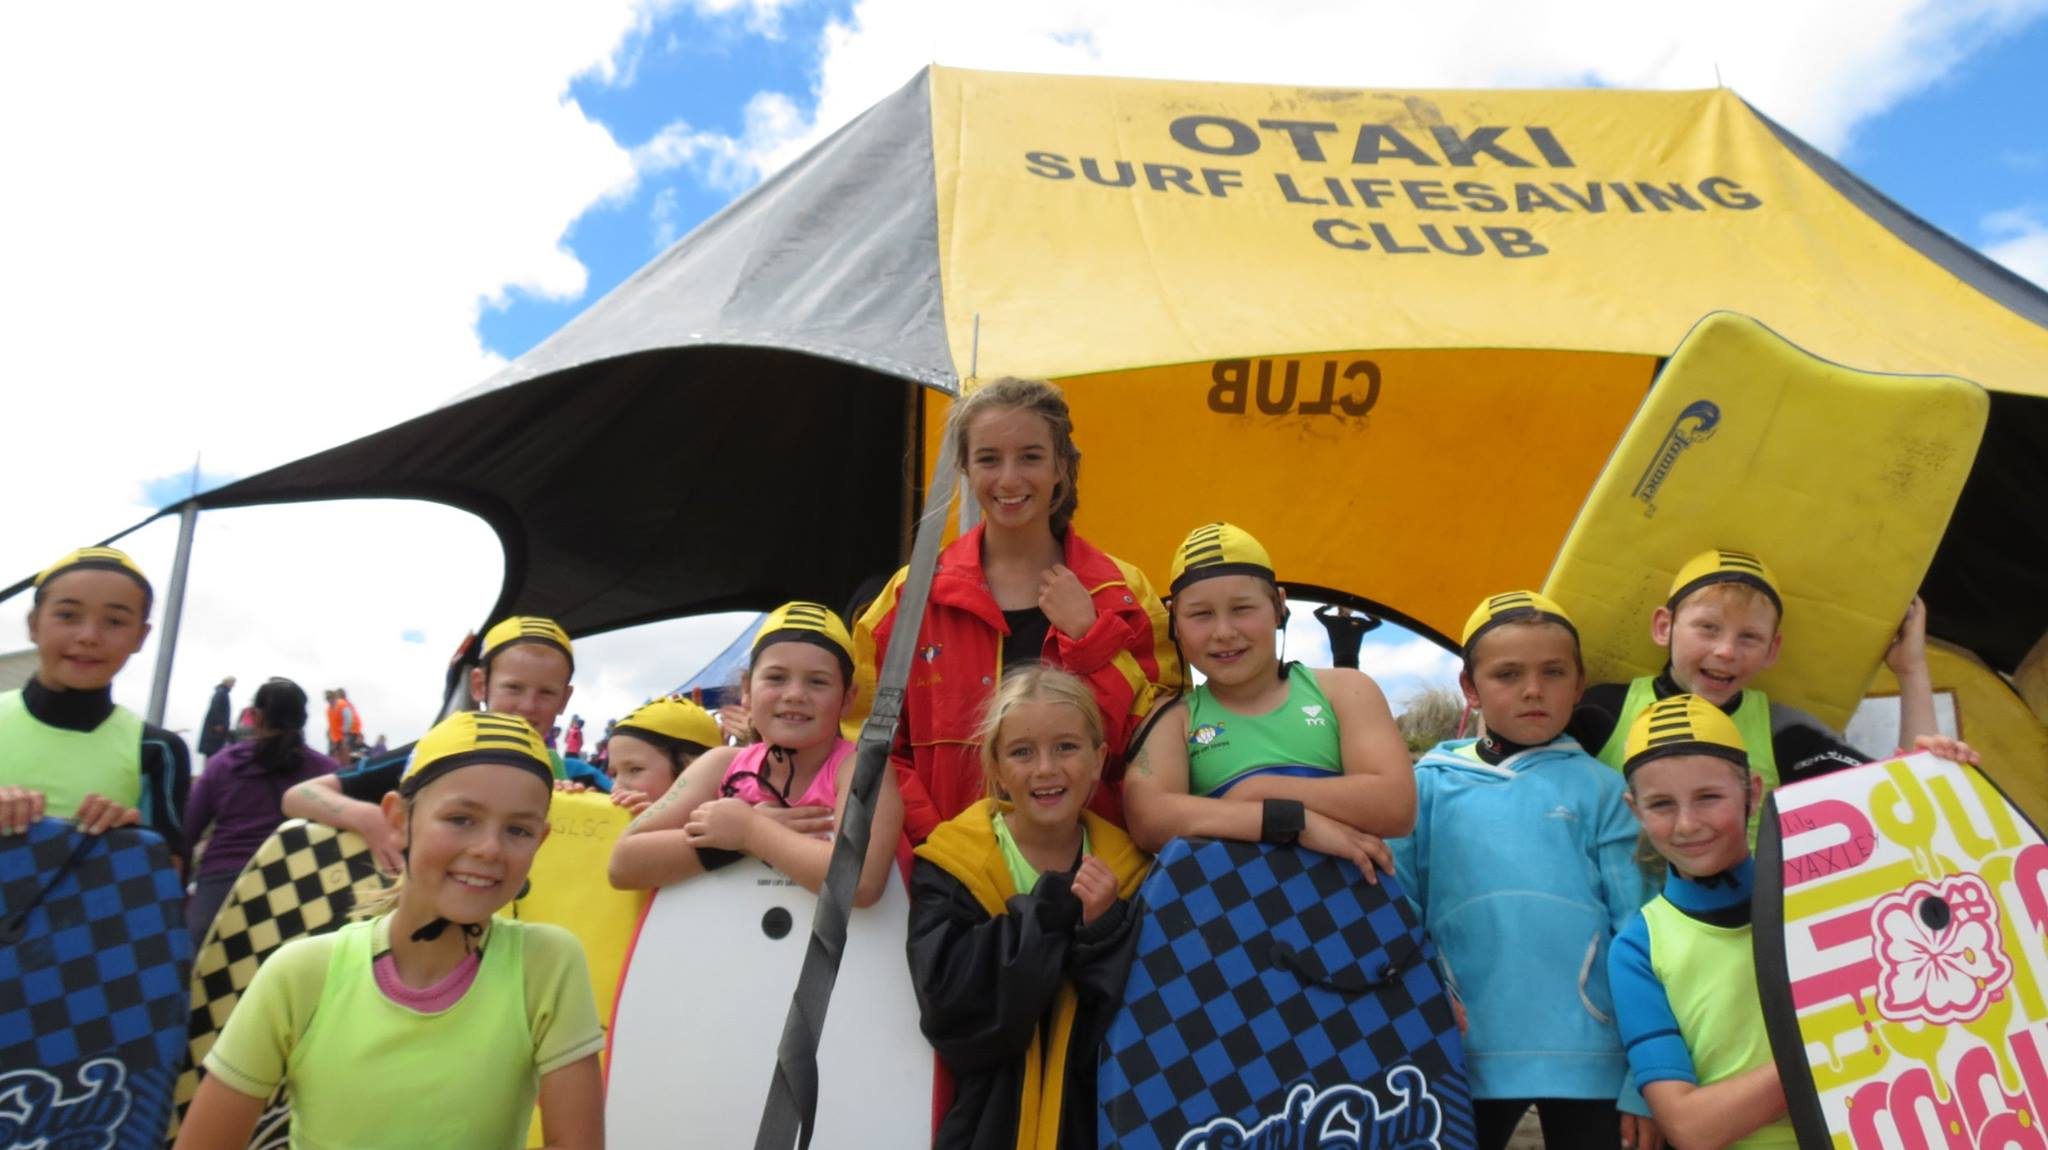 Otaki surf club nippers